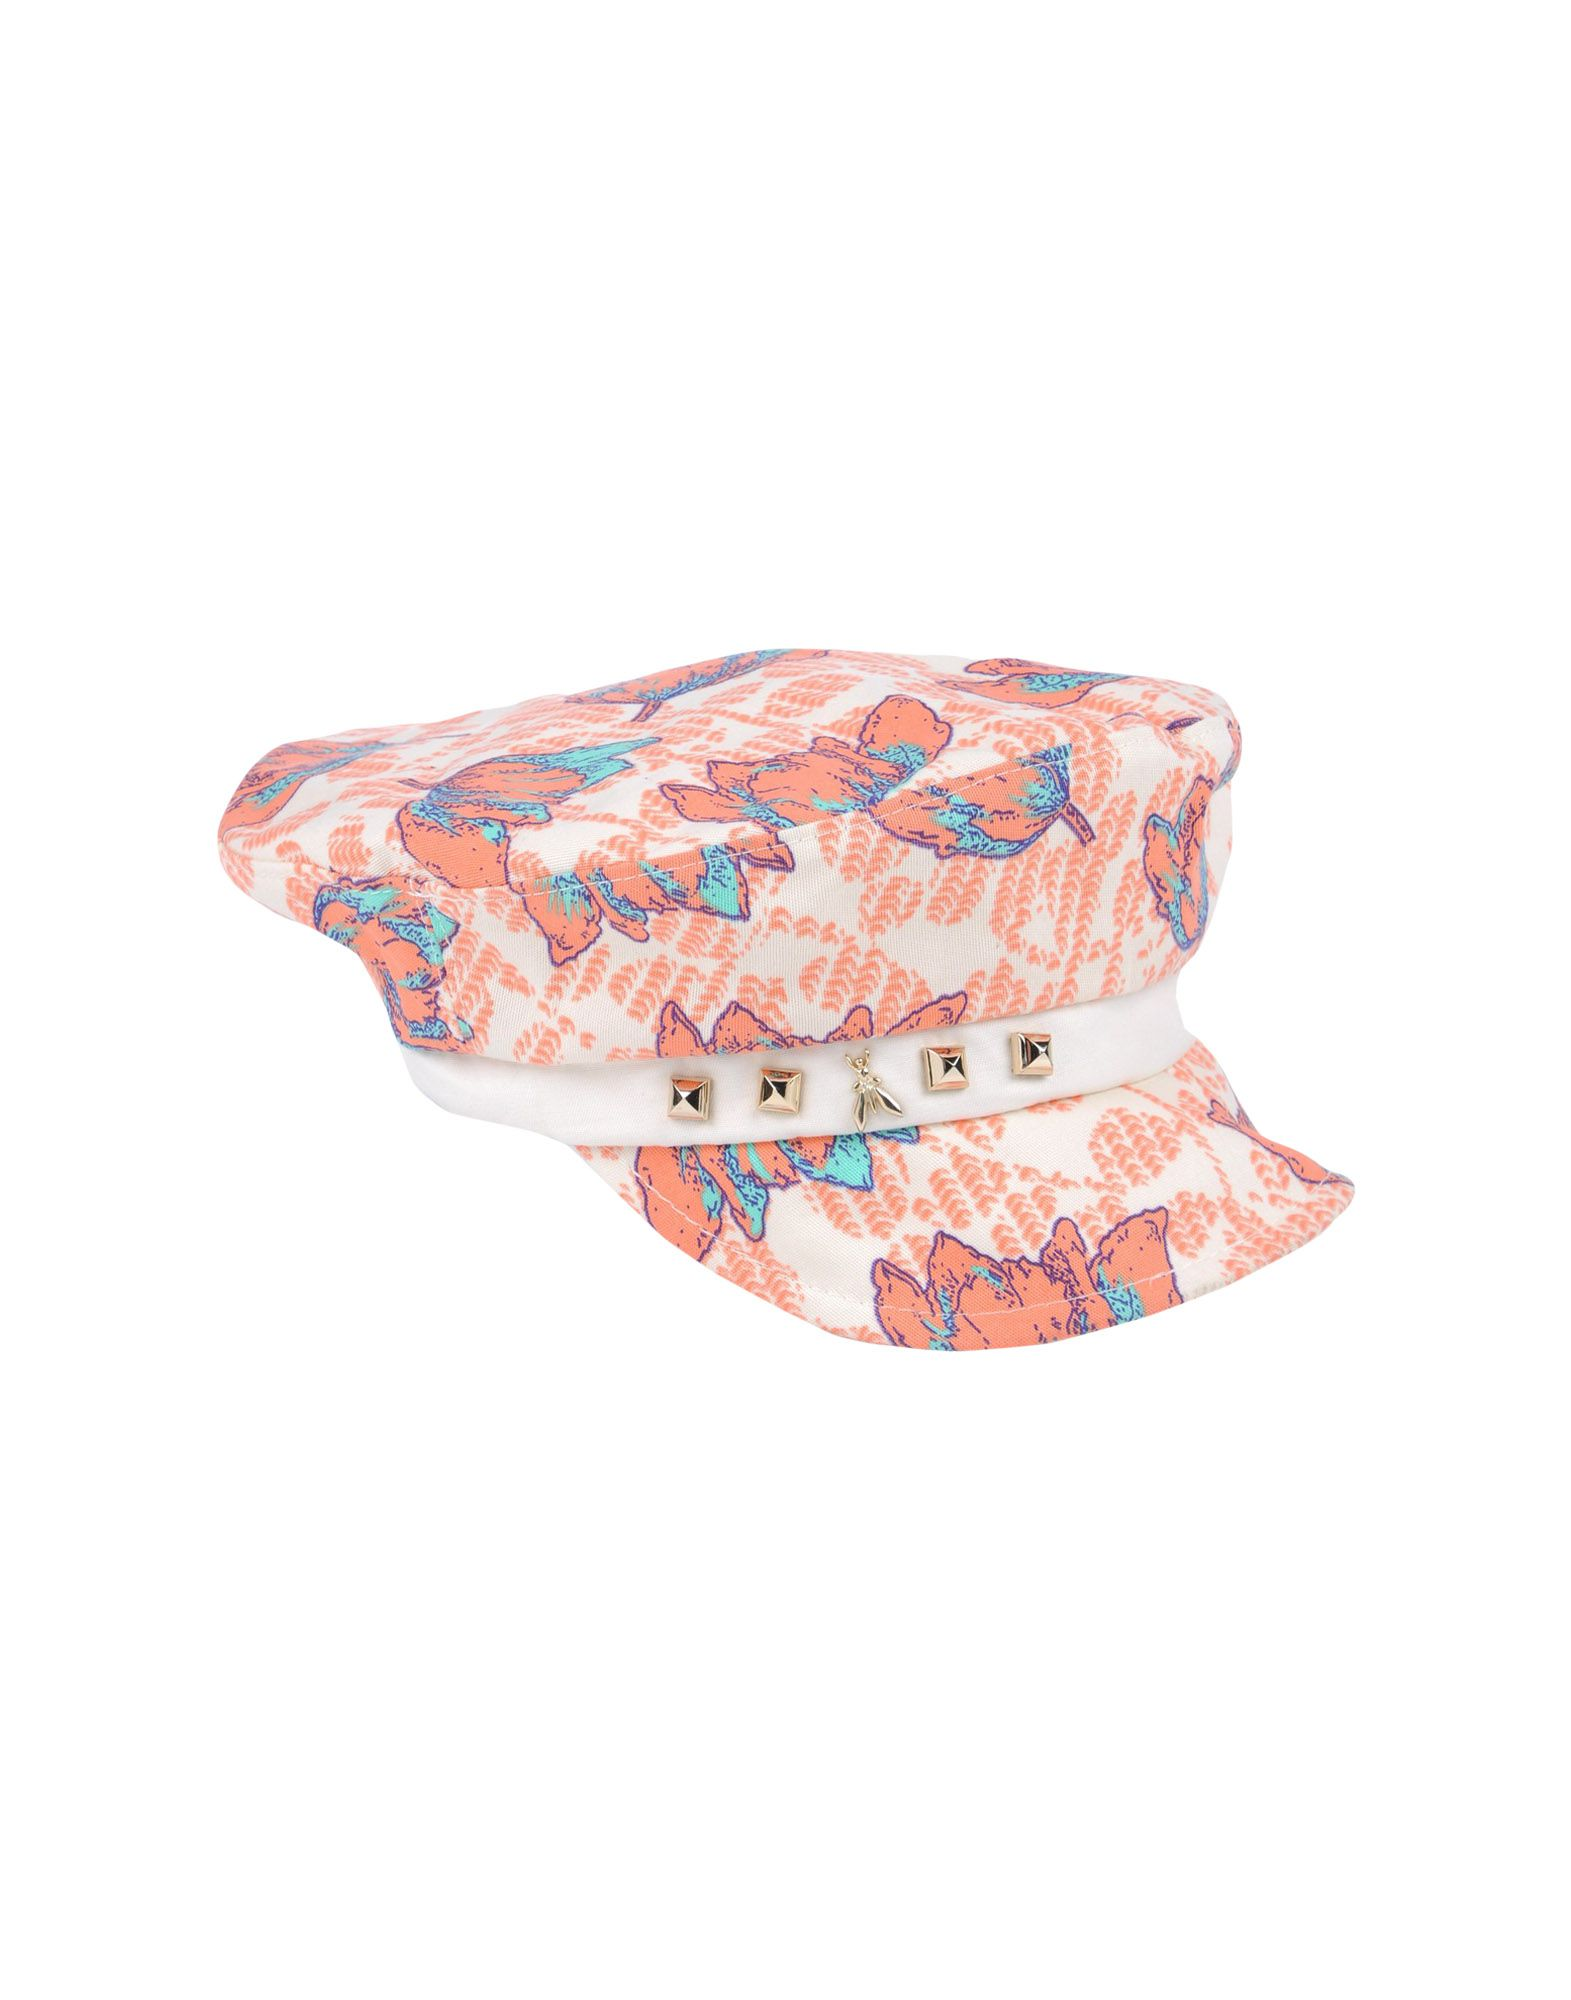 Patrizia Pepe Hat In Pink  0be0a3c851c